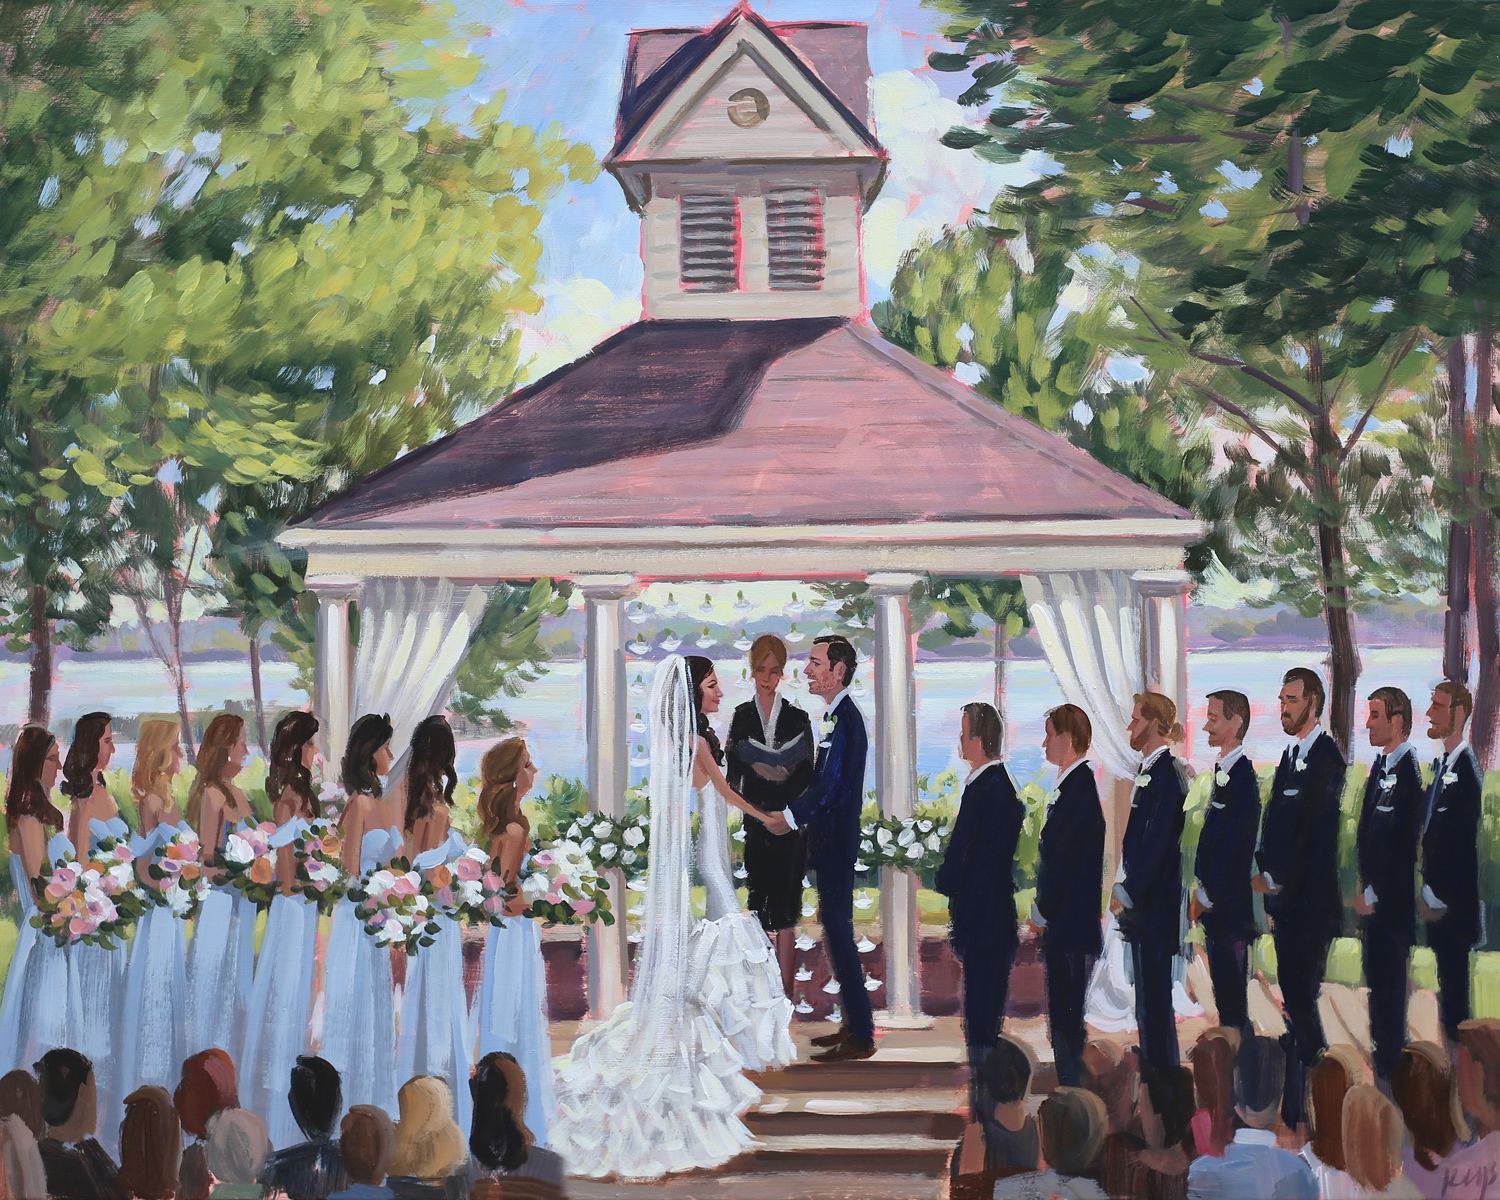 Live Wedding Painter, Ben Keys, captured Courtney + Preston's wedding day at the picturesque Old North State Club located outside of Charlotte, NC